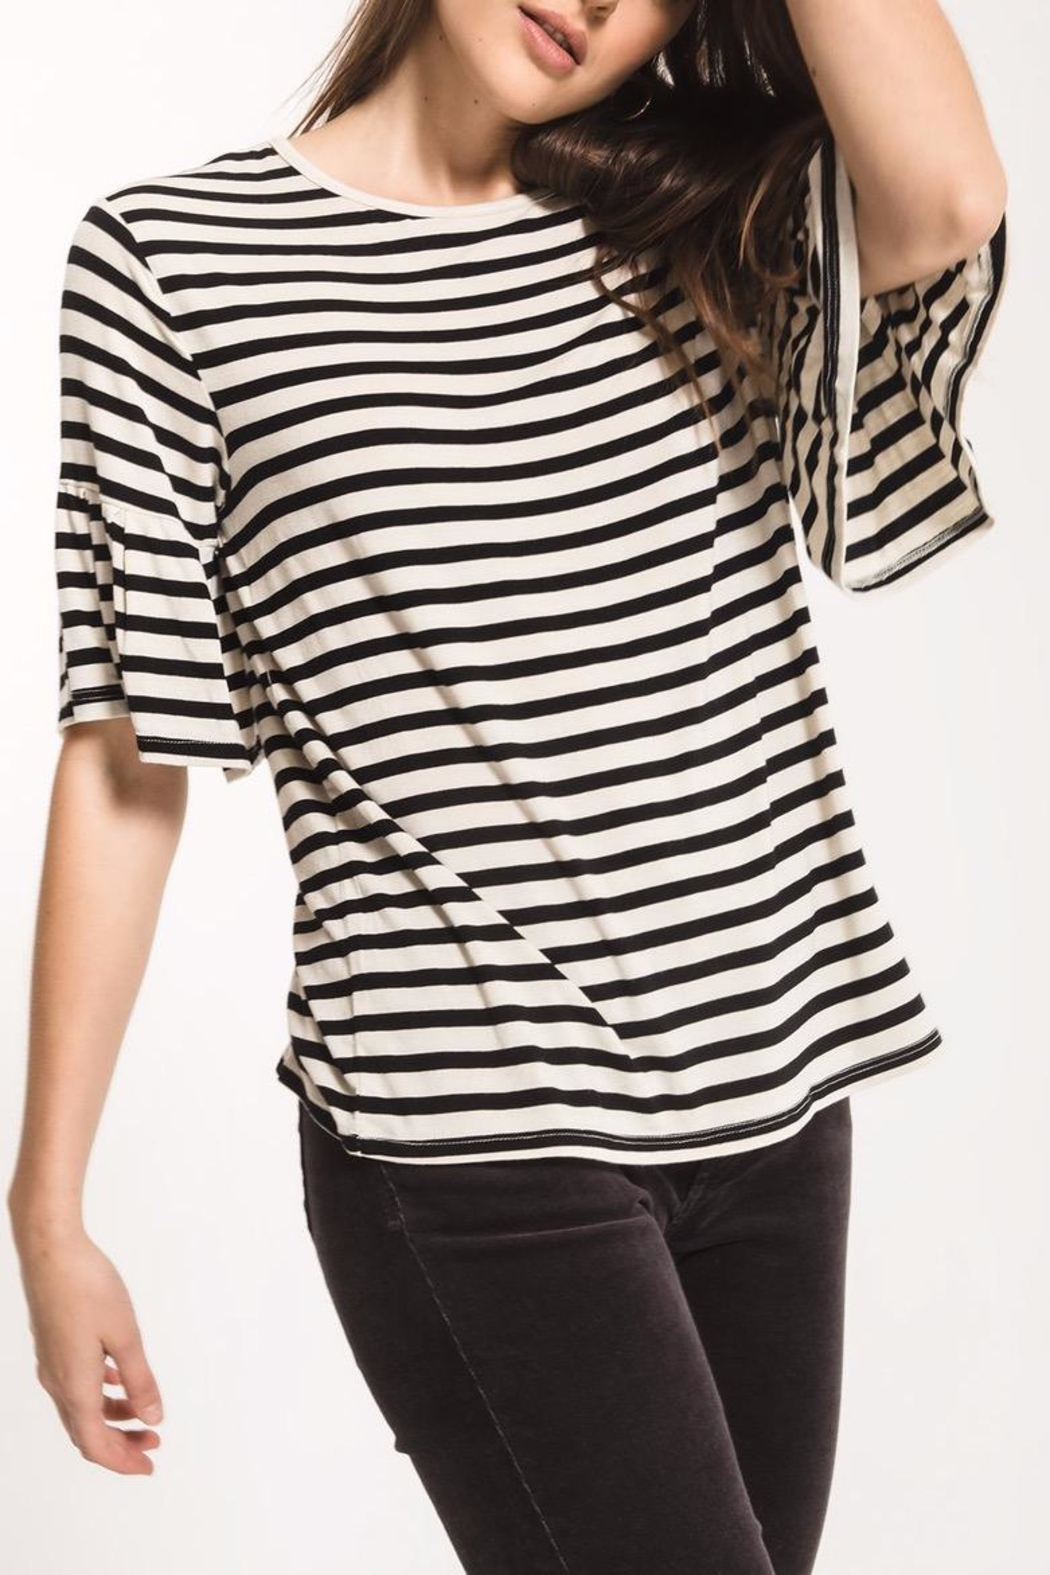 z supply Striped Ruffle Tee - Back Cropped Image